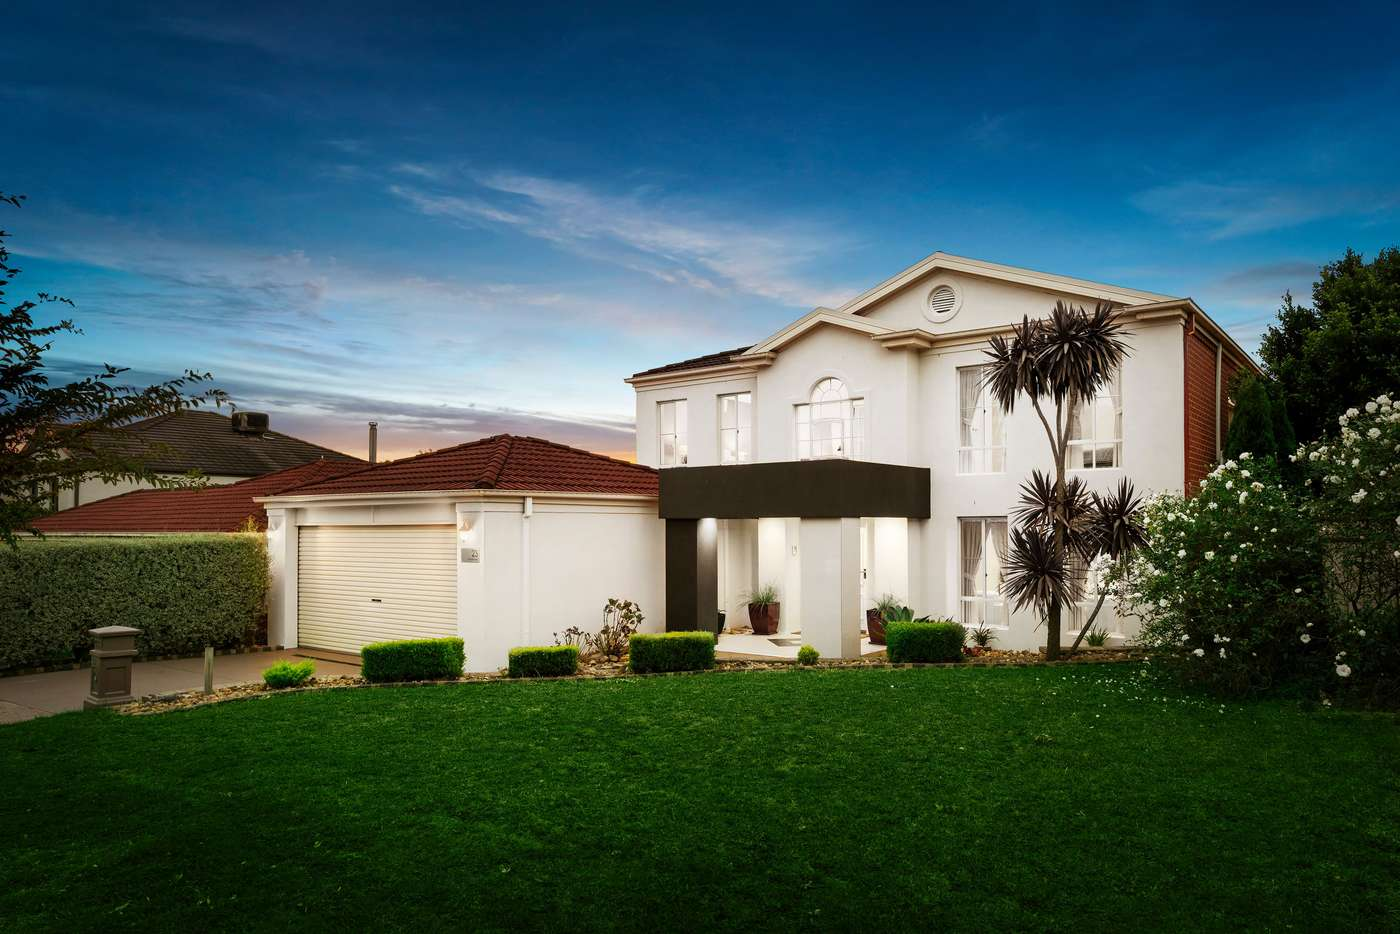 Main view of Homely house listing, 23 Kilcatten Rise, Rowville VIC 3178